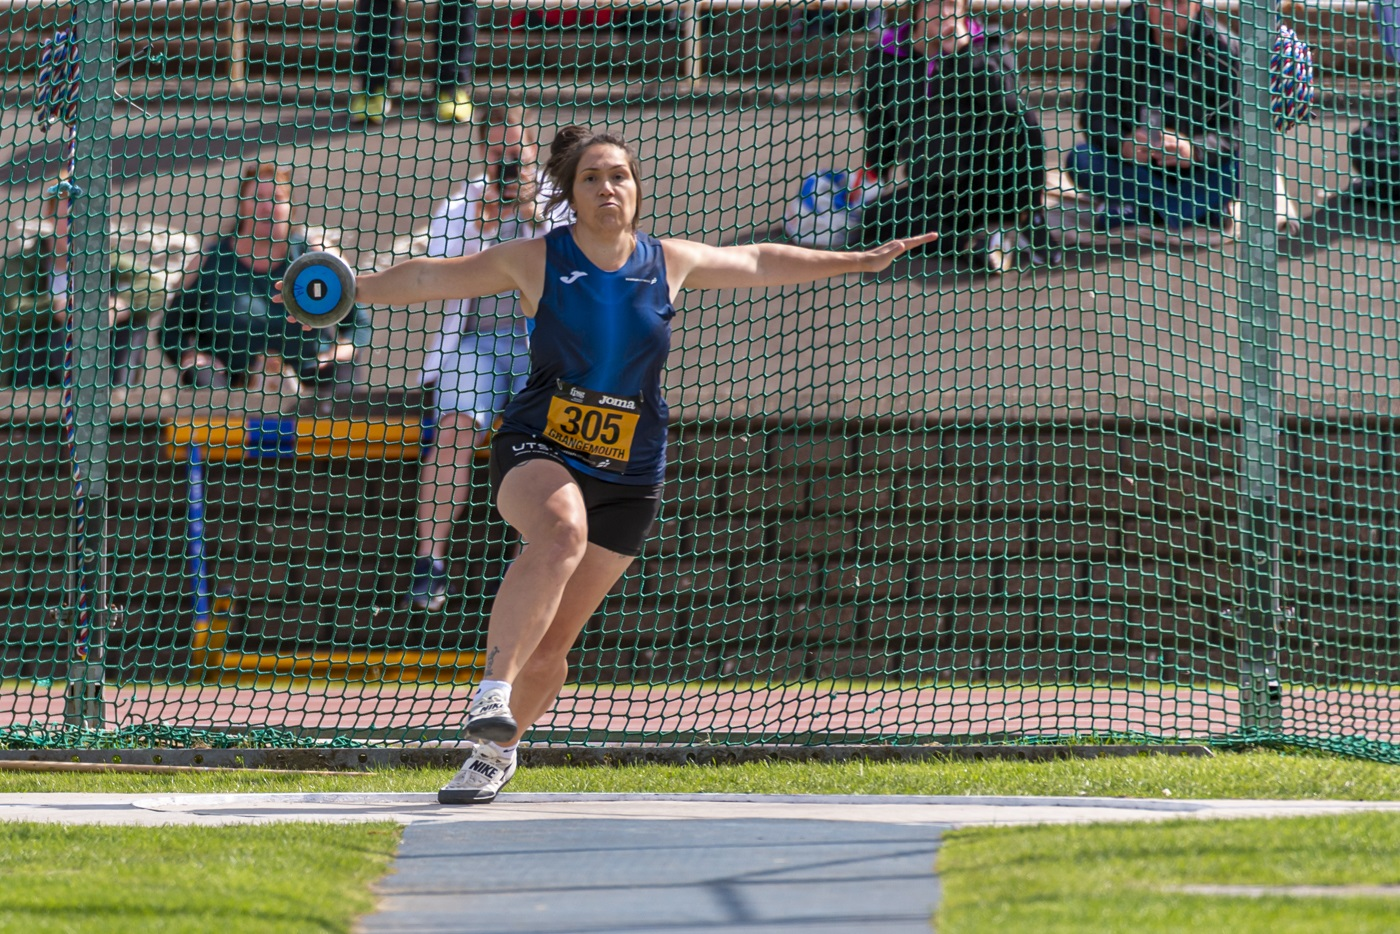 Law has great record at the Scottish Track and Field Championships.